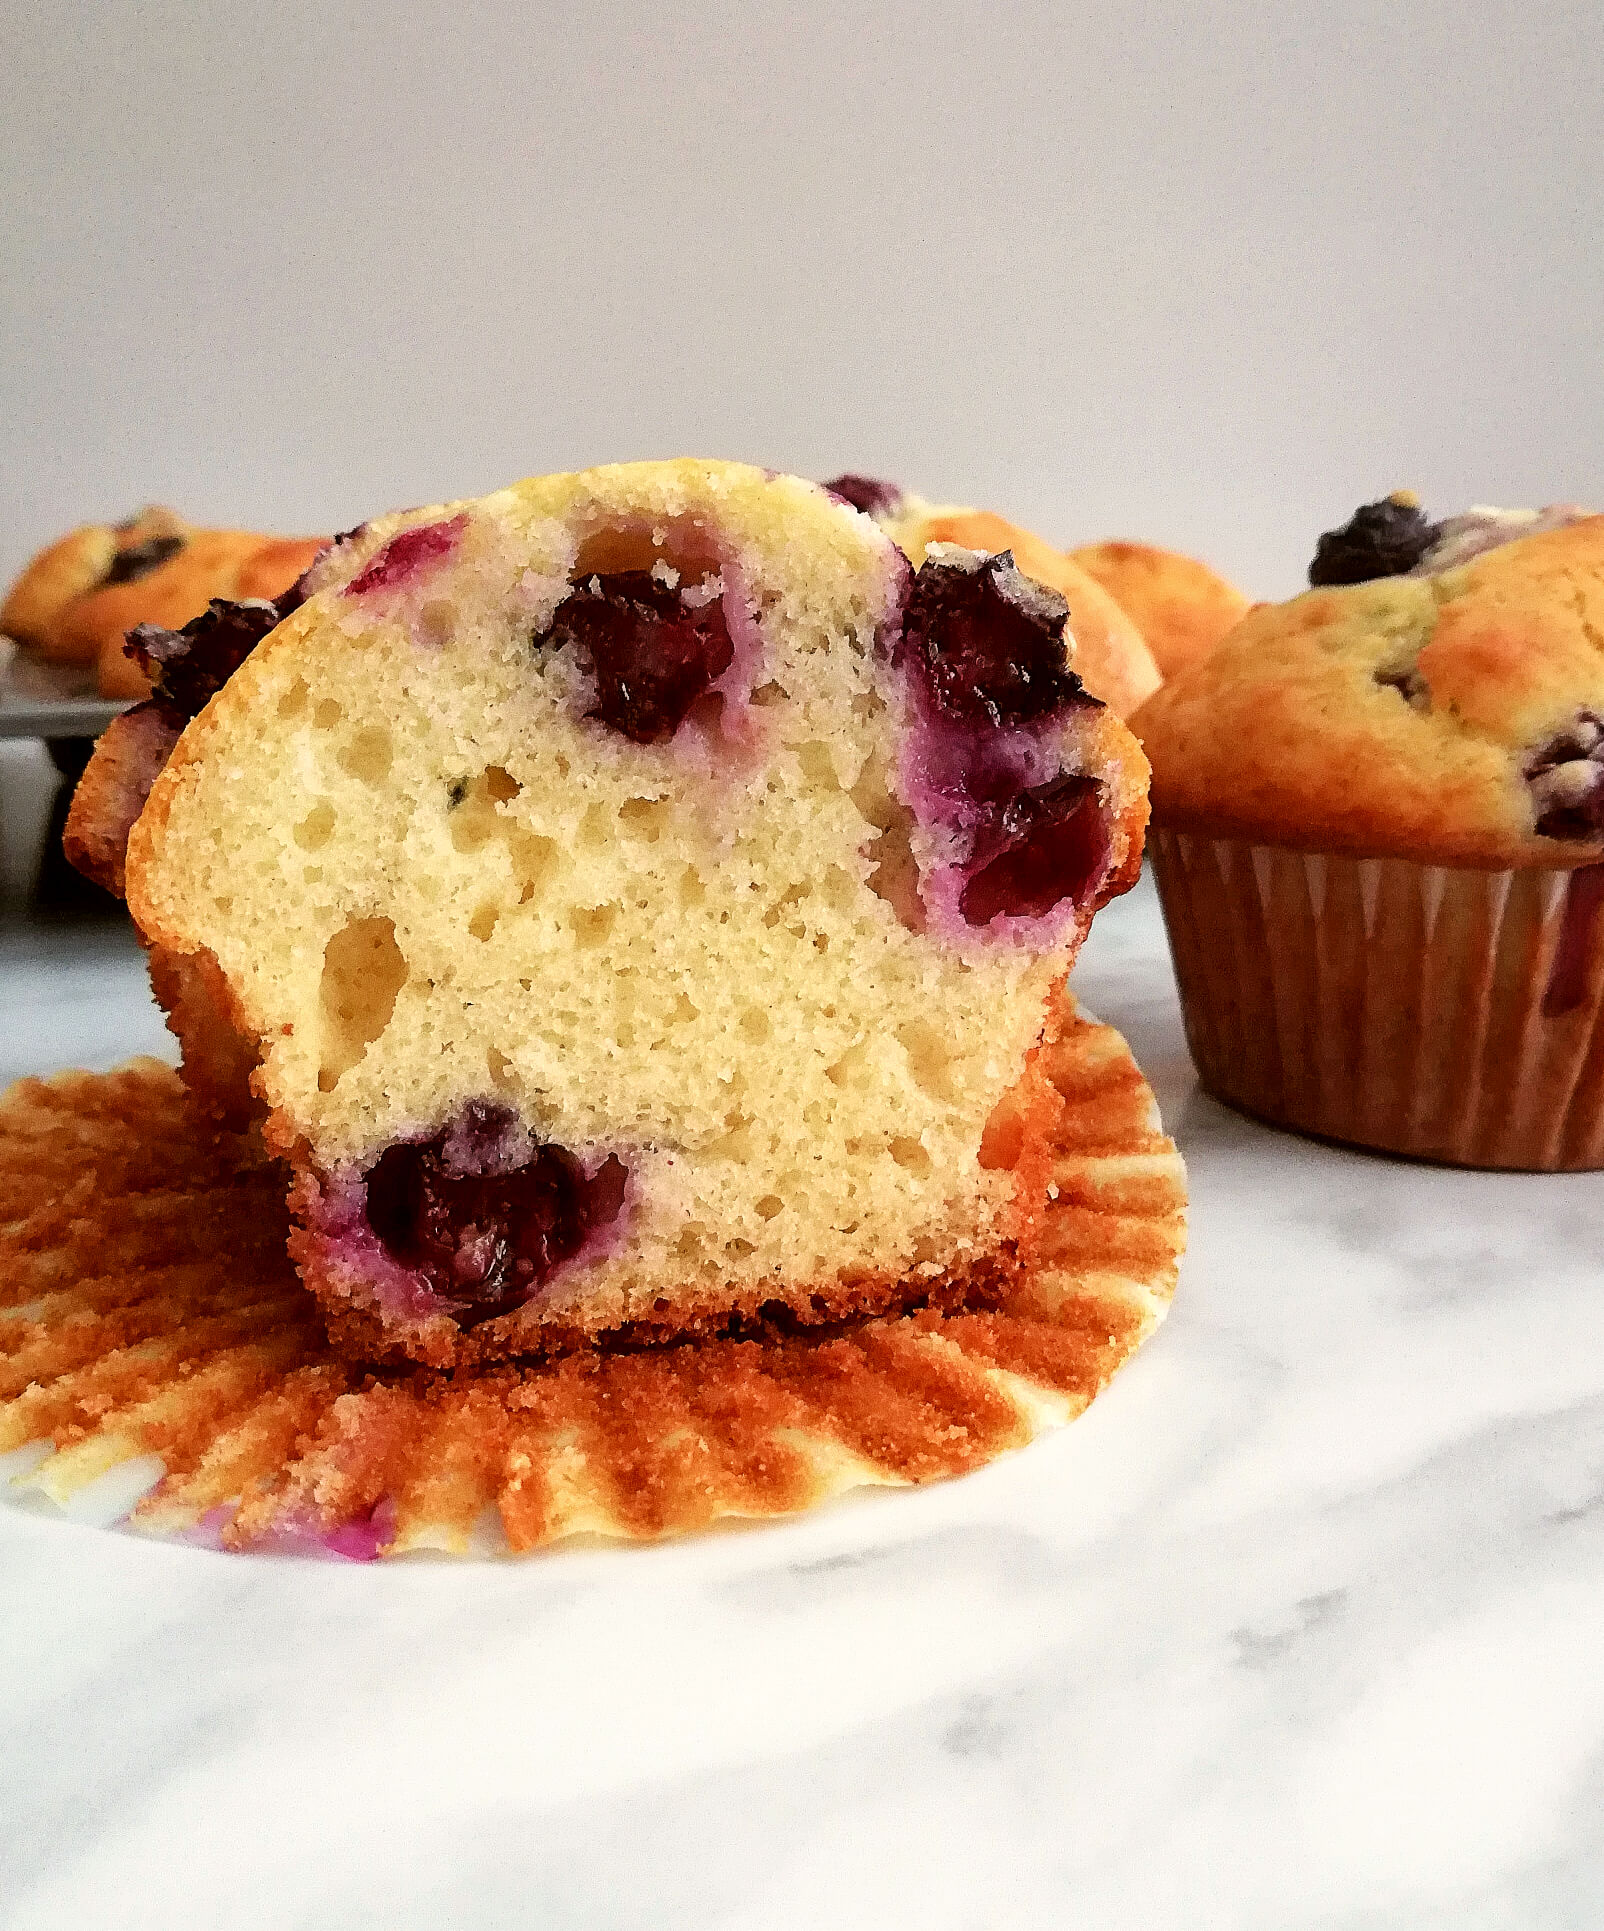 blueberry muffins inside view